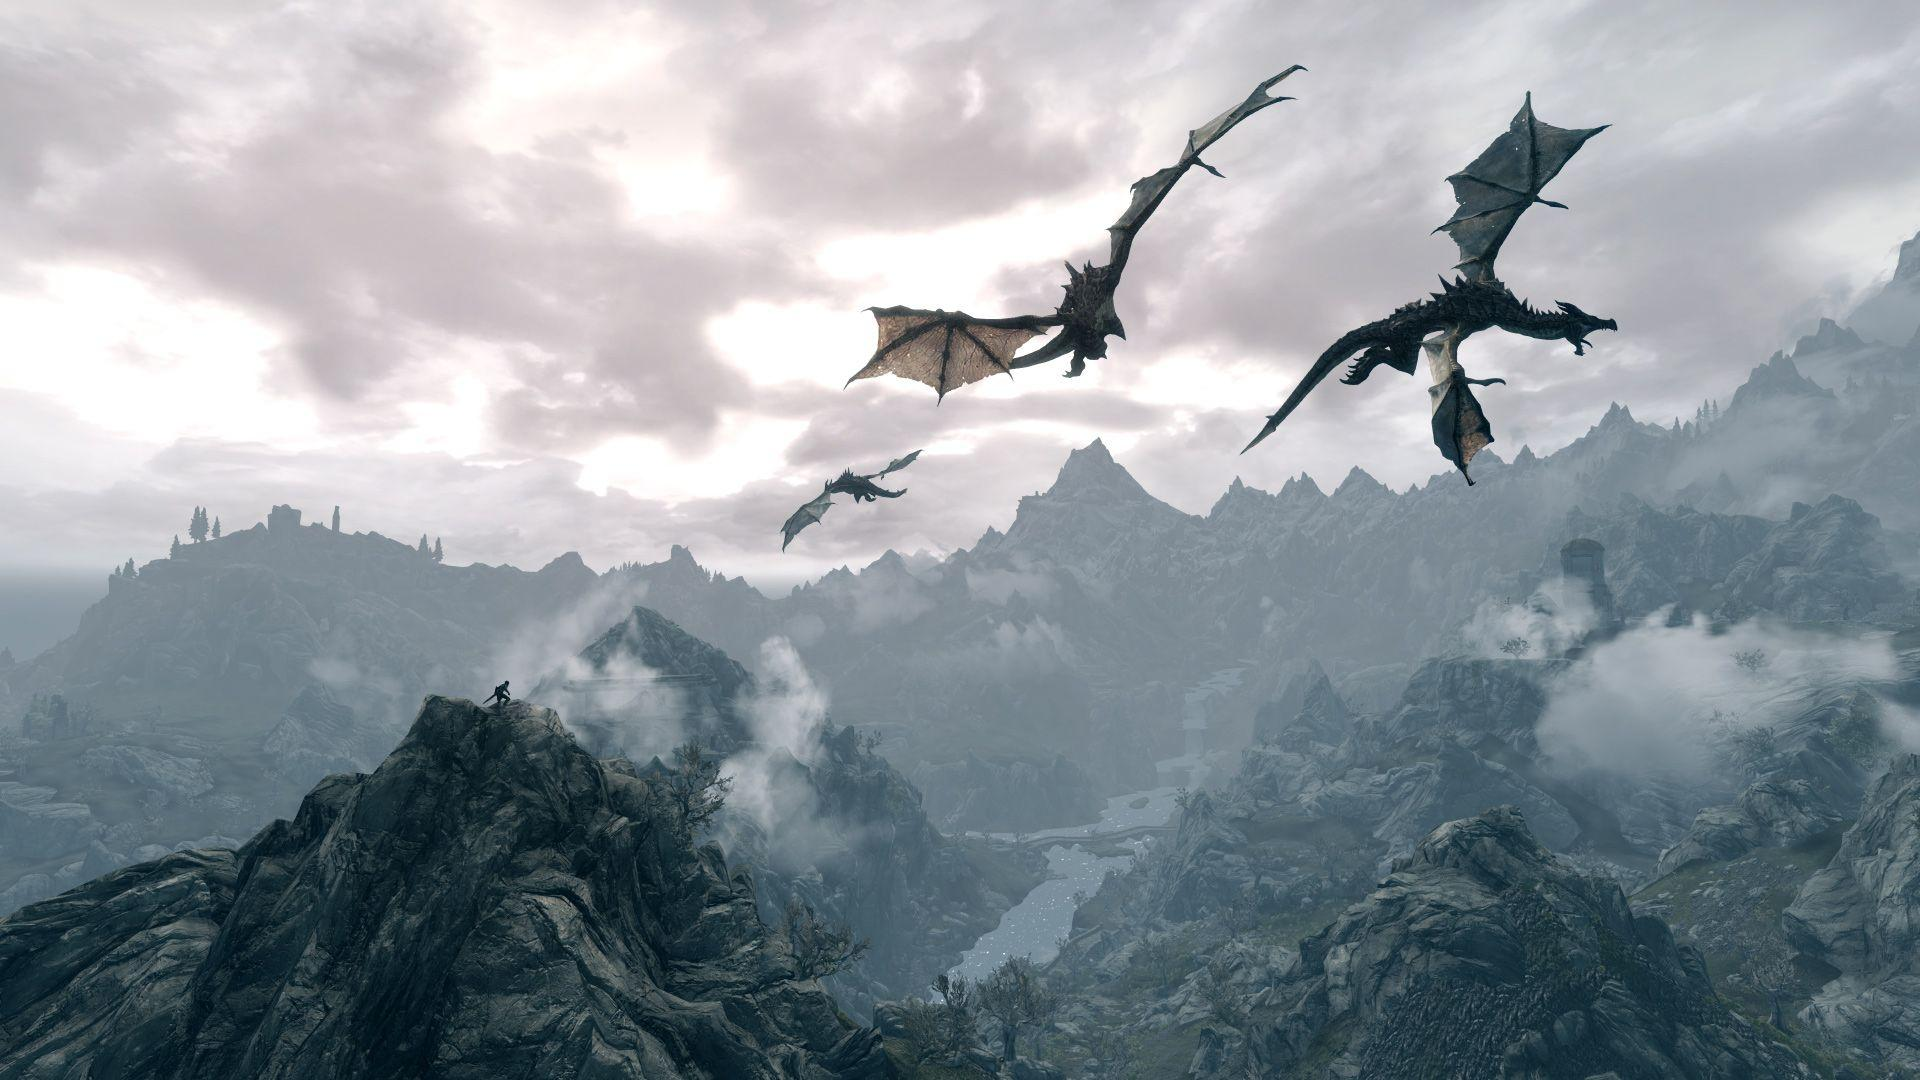 dragon wallpaper widescreen high resolution - photo #4